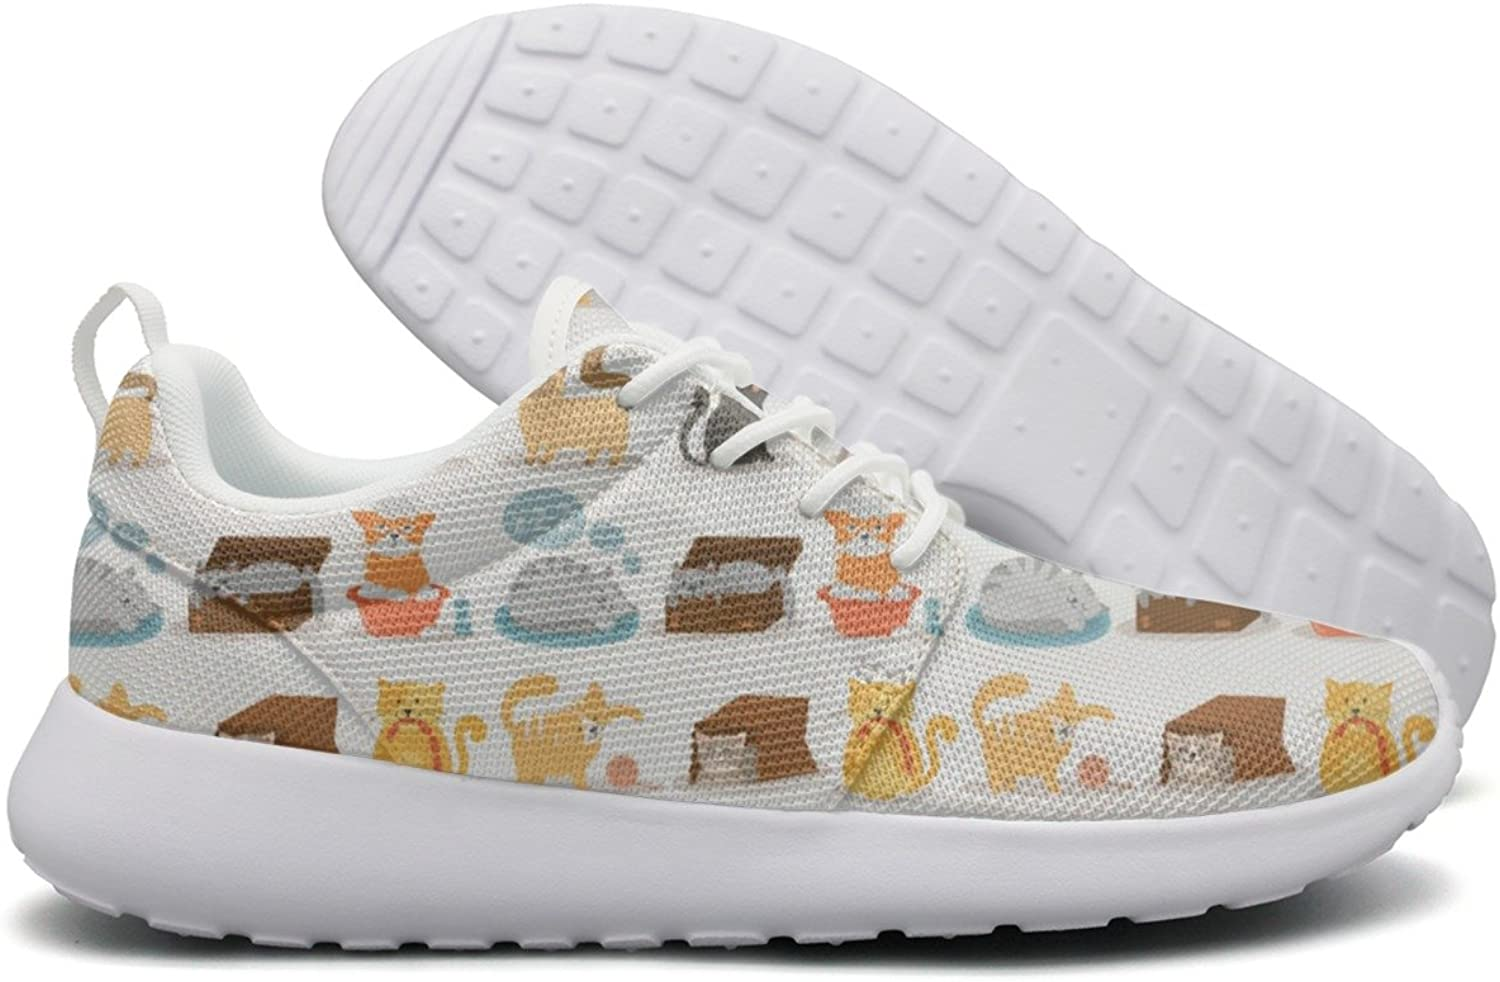 Hoohle Sports Cute Cartoon Cat Daily Activities Women Roshe One Flex Mesh Mens Casual shoes